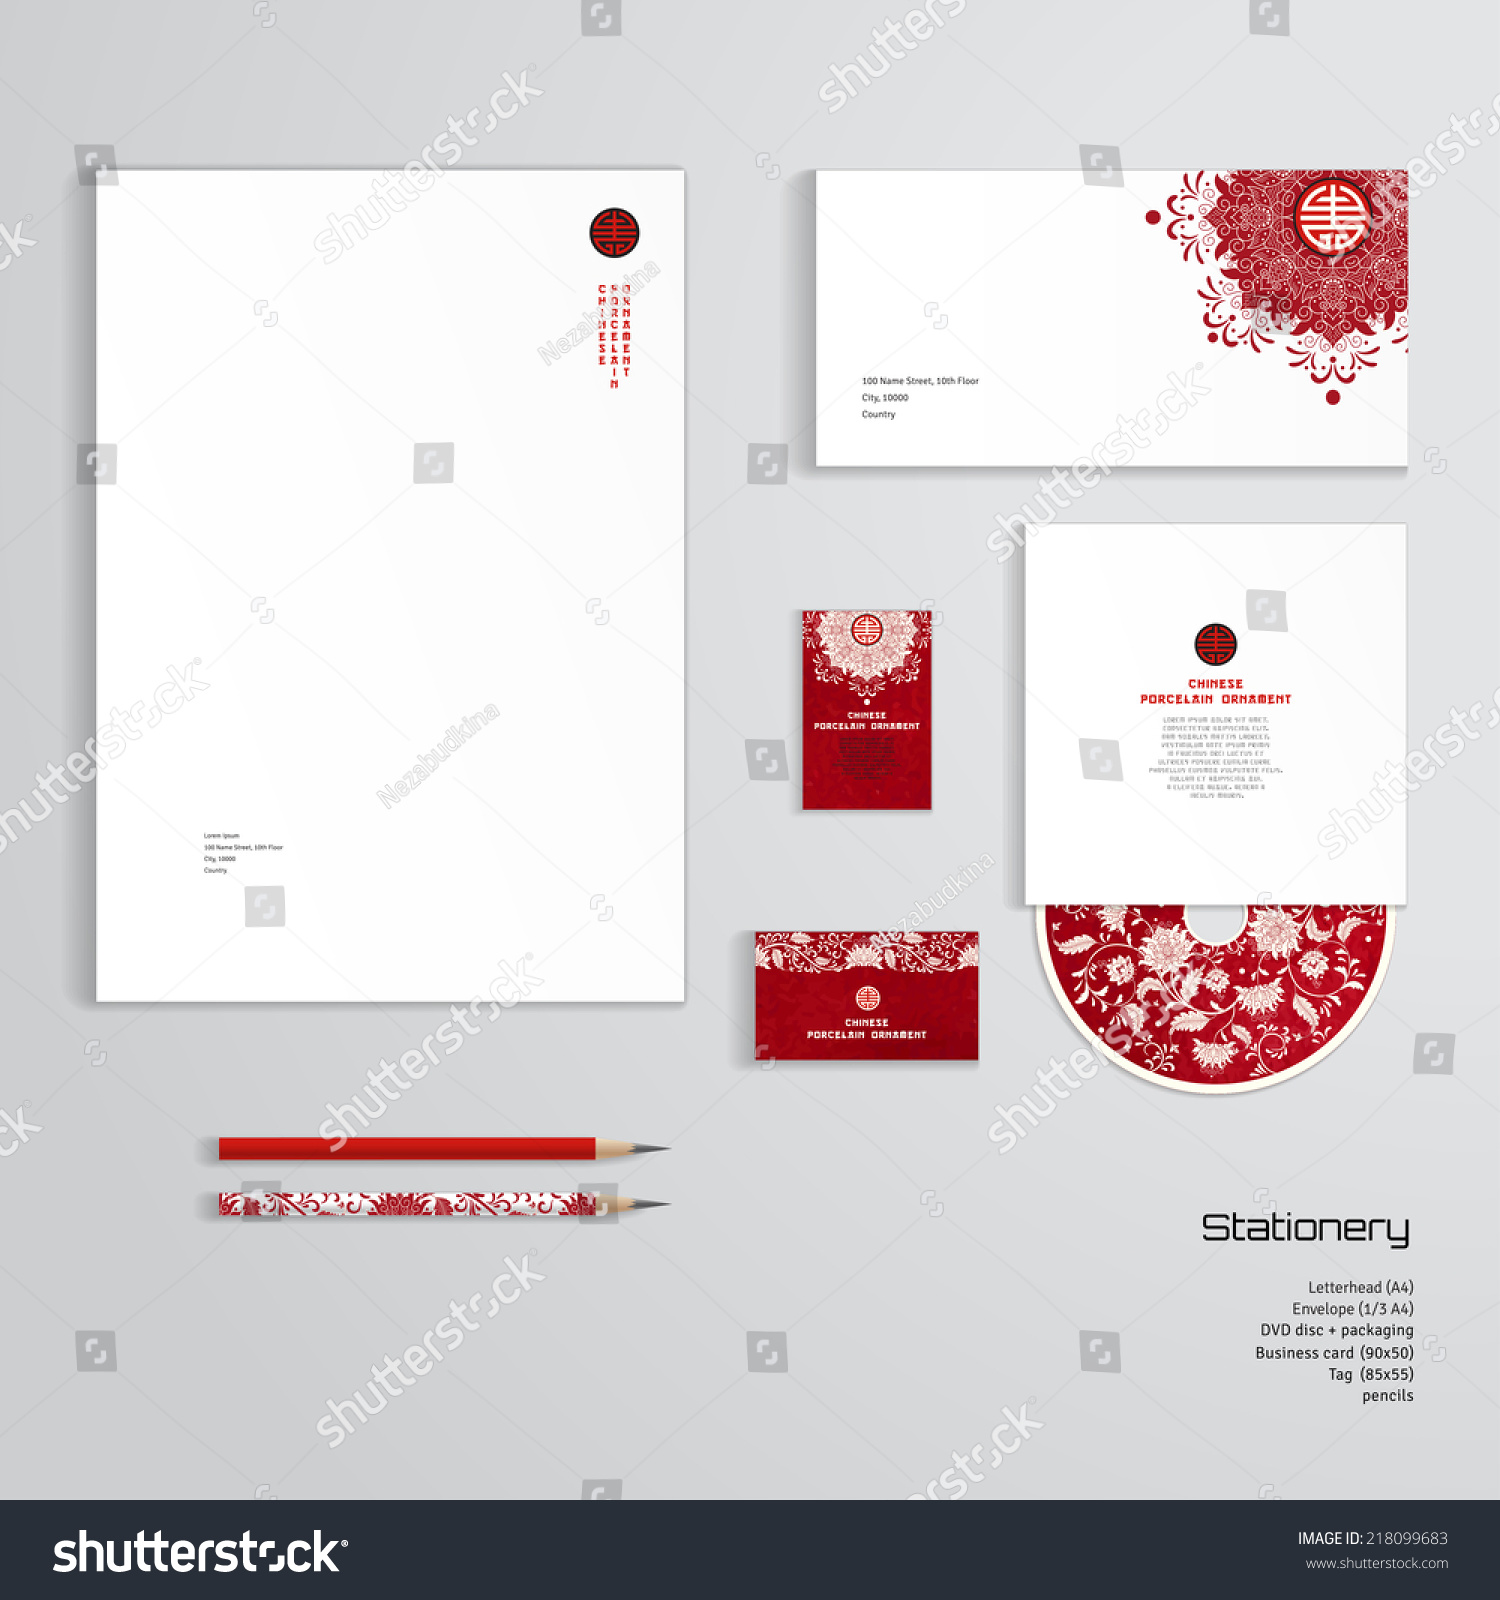 Vector identity templates letterhead envelope business stock vector vector identity templates letterhead envelope business card tag disc with packaging fbccfo Gallery